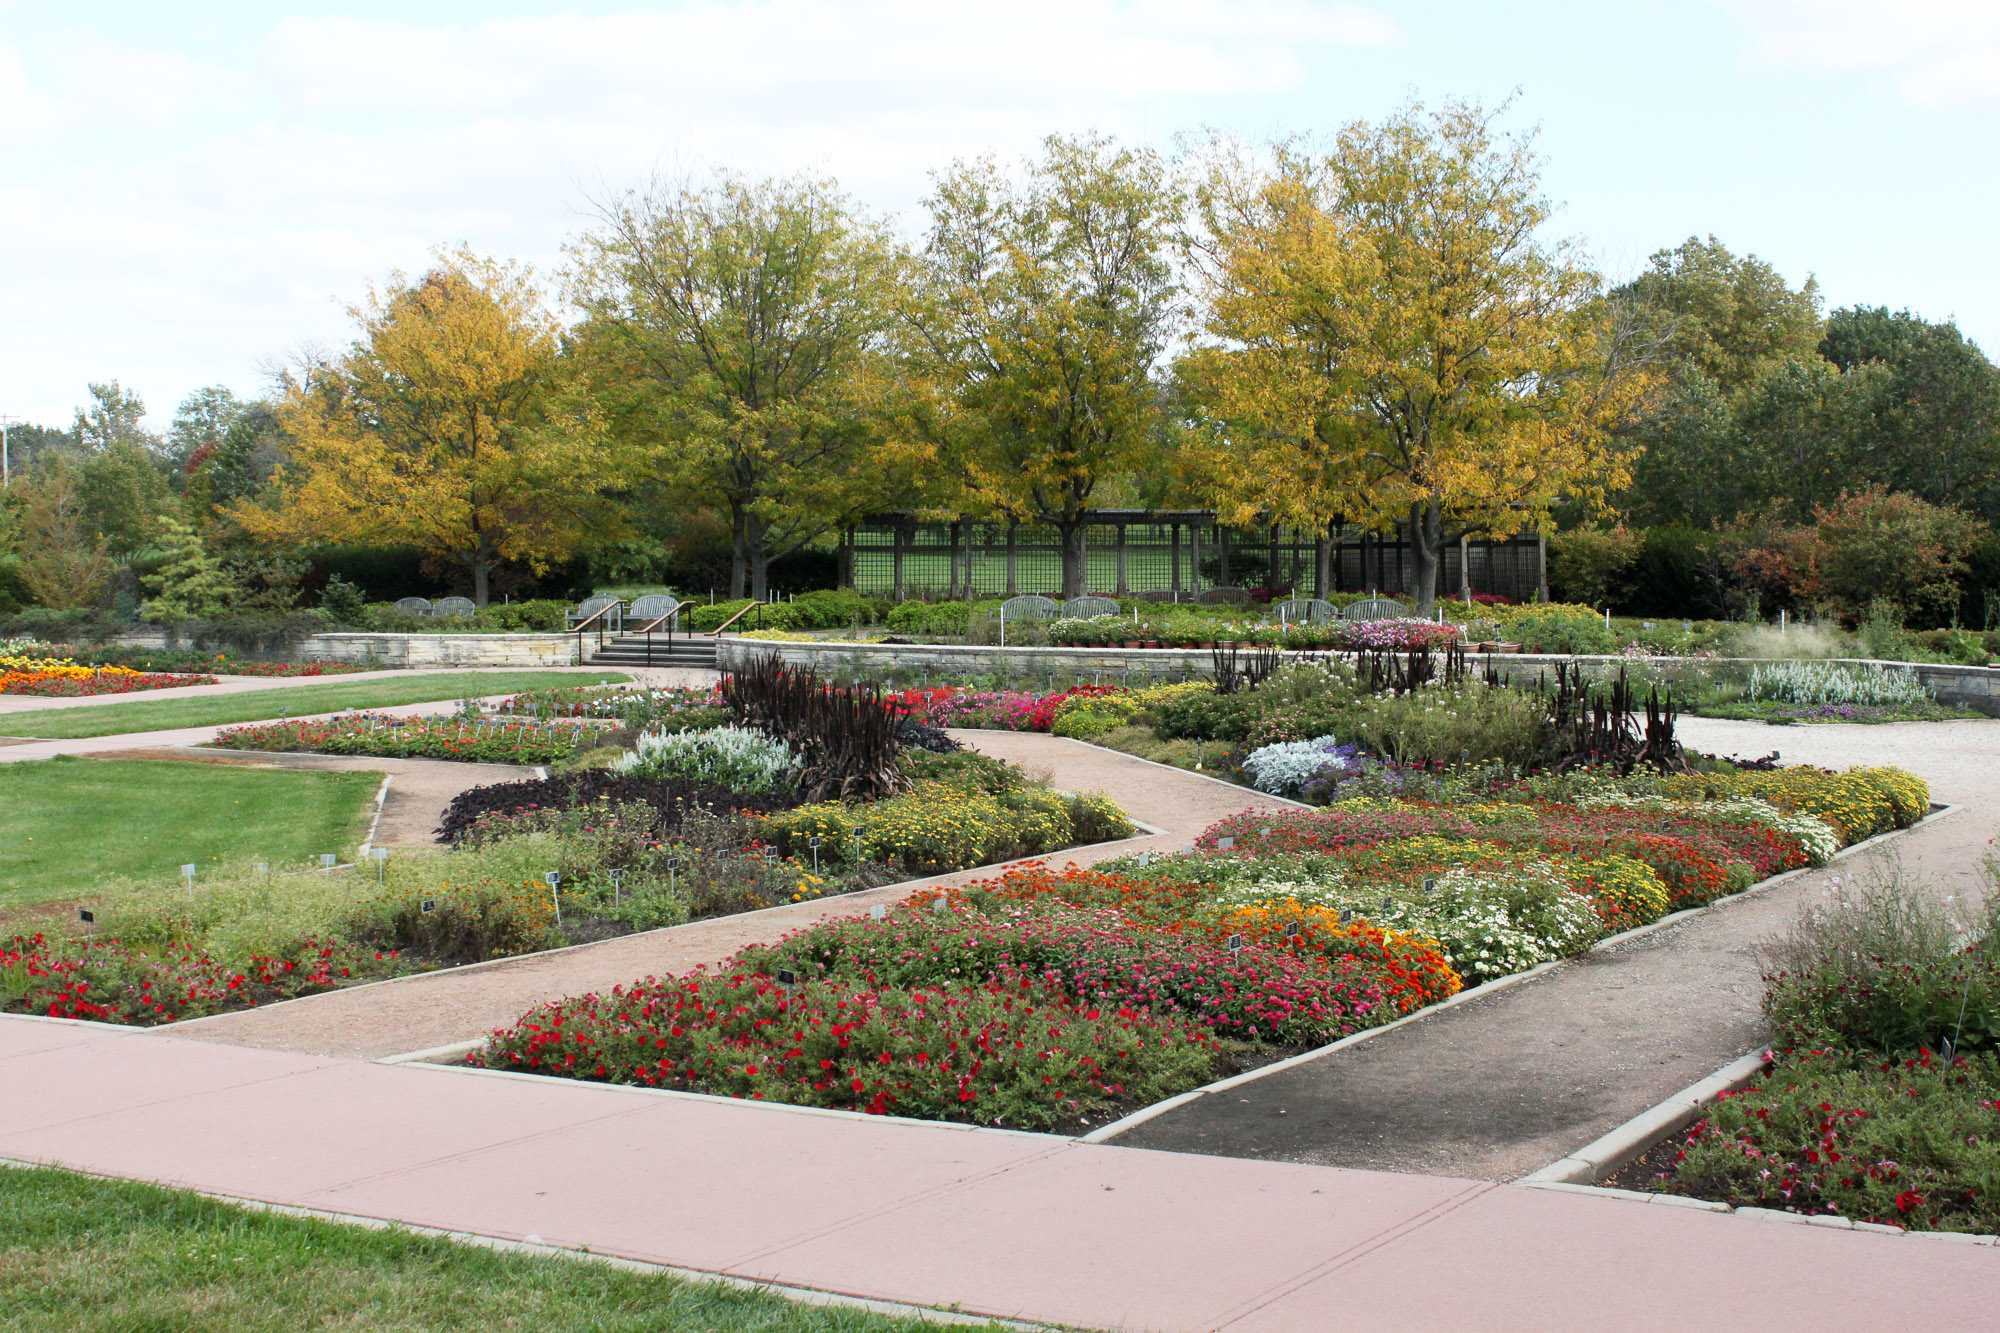 The Miles C. Hartley garden at the Arboretum is the largest of 5 major gardens. The rest of the Arboretum's 160 acres contains several open fields and a number of tree-lined paths.